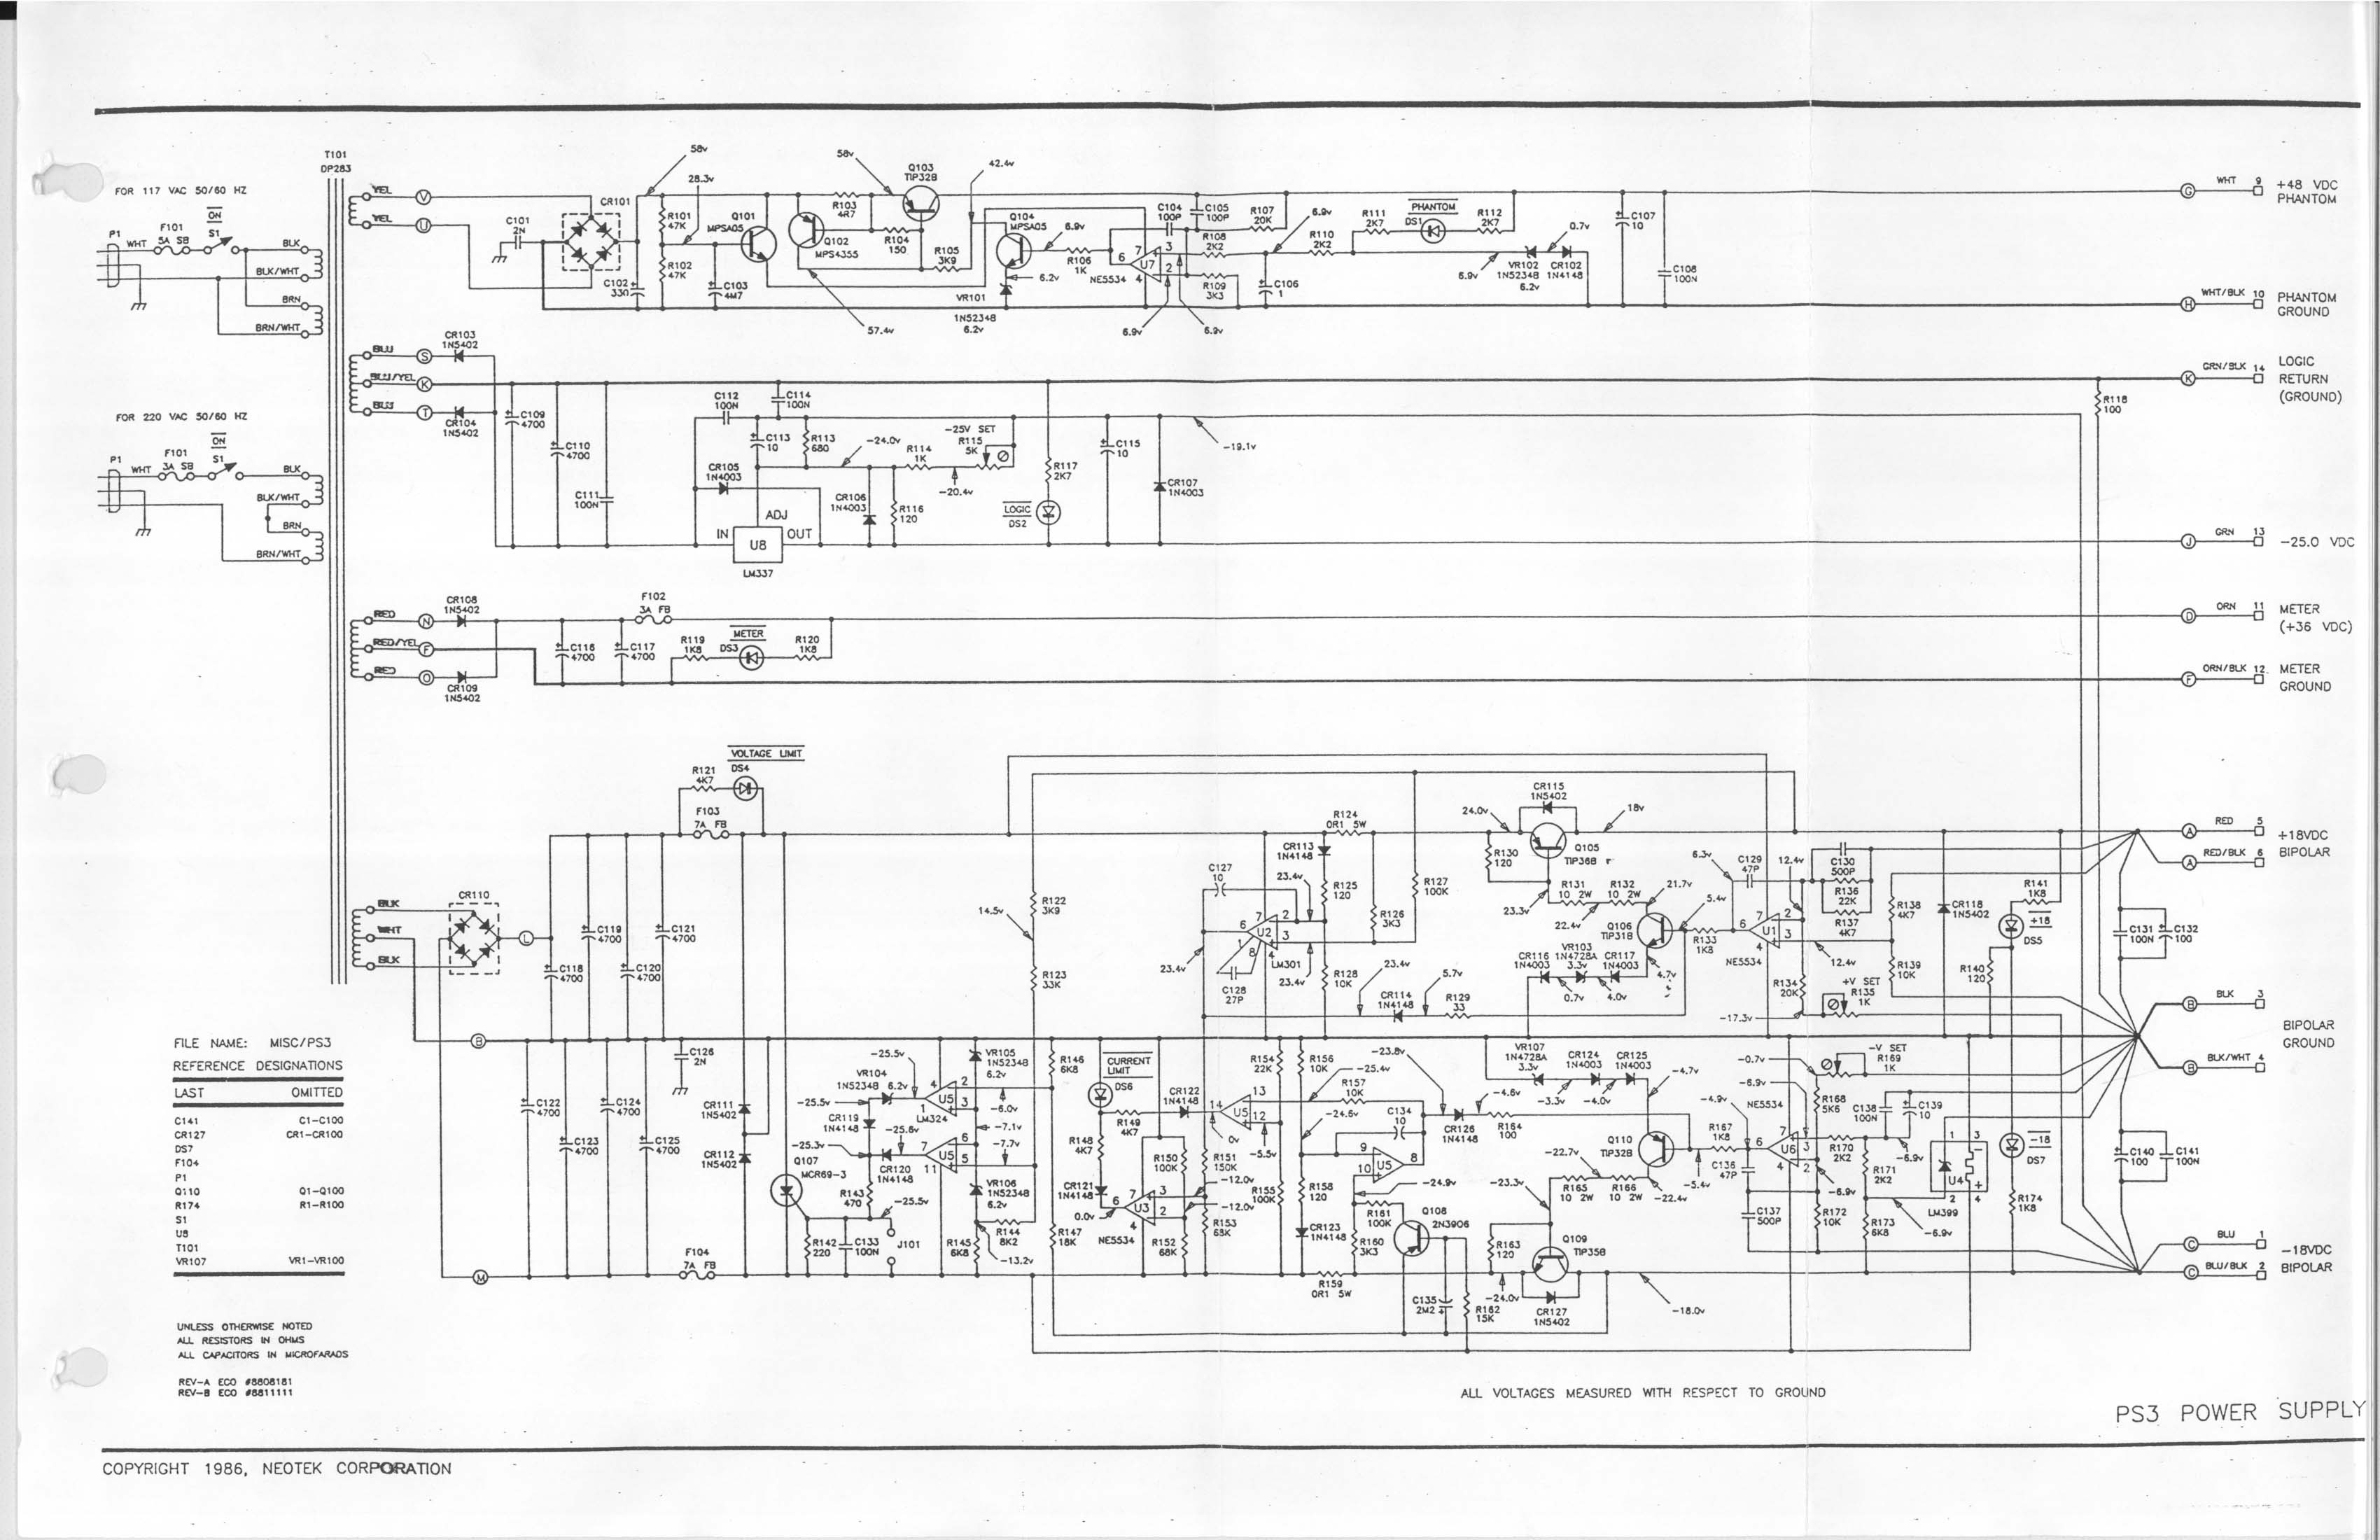 Ps3 Wiring Diagram Not Lossing Sony Fat Schematic Get Free Image About Playstation 3 Controller